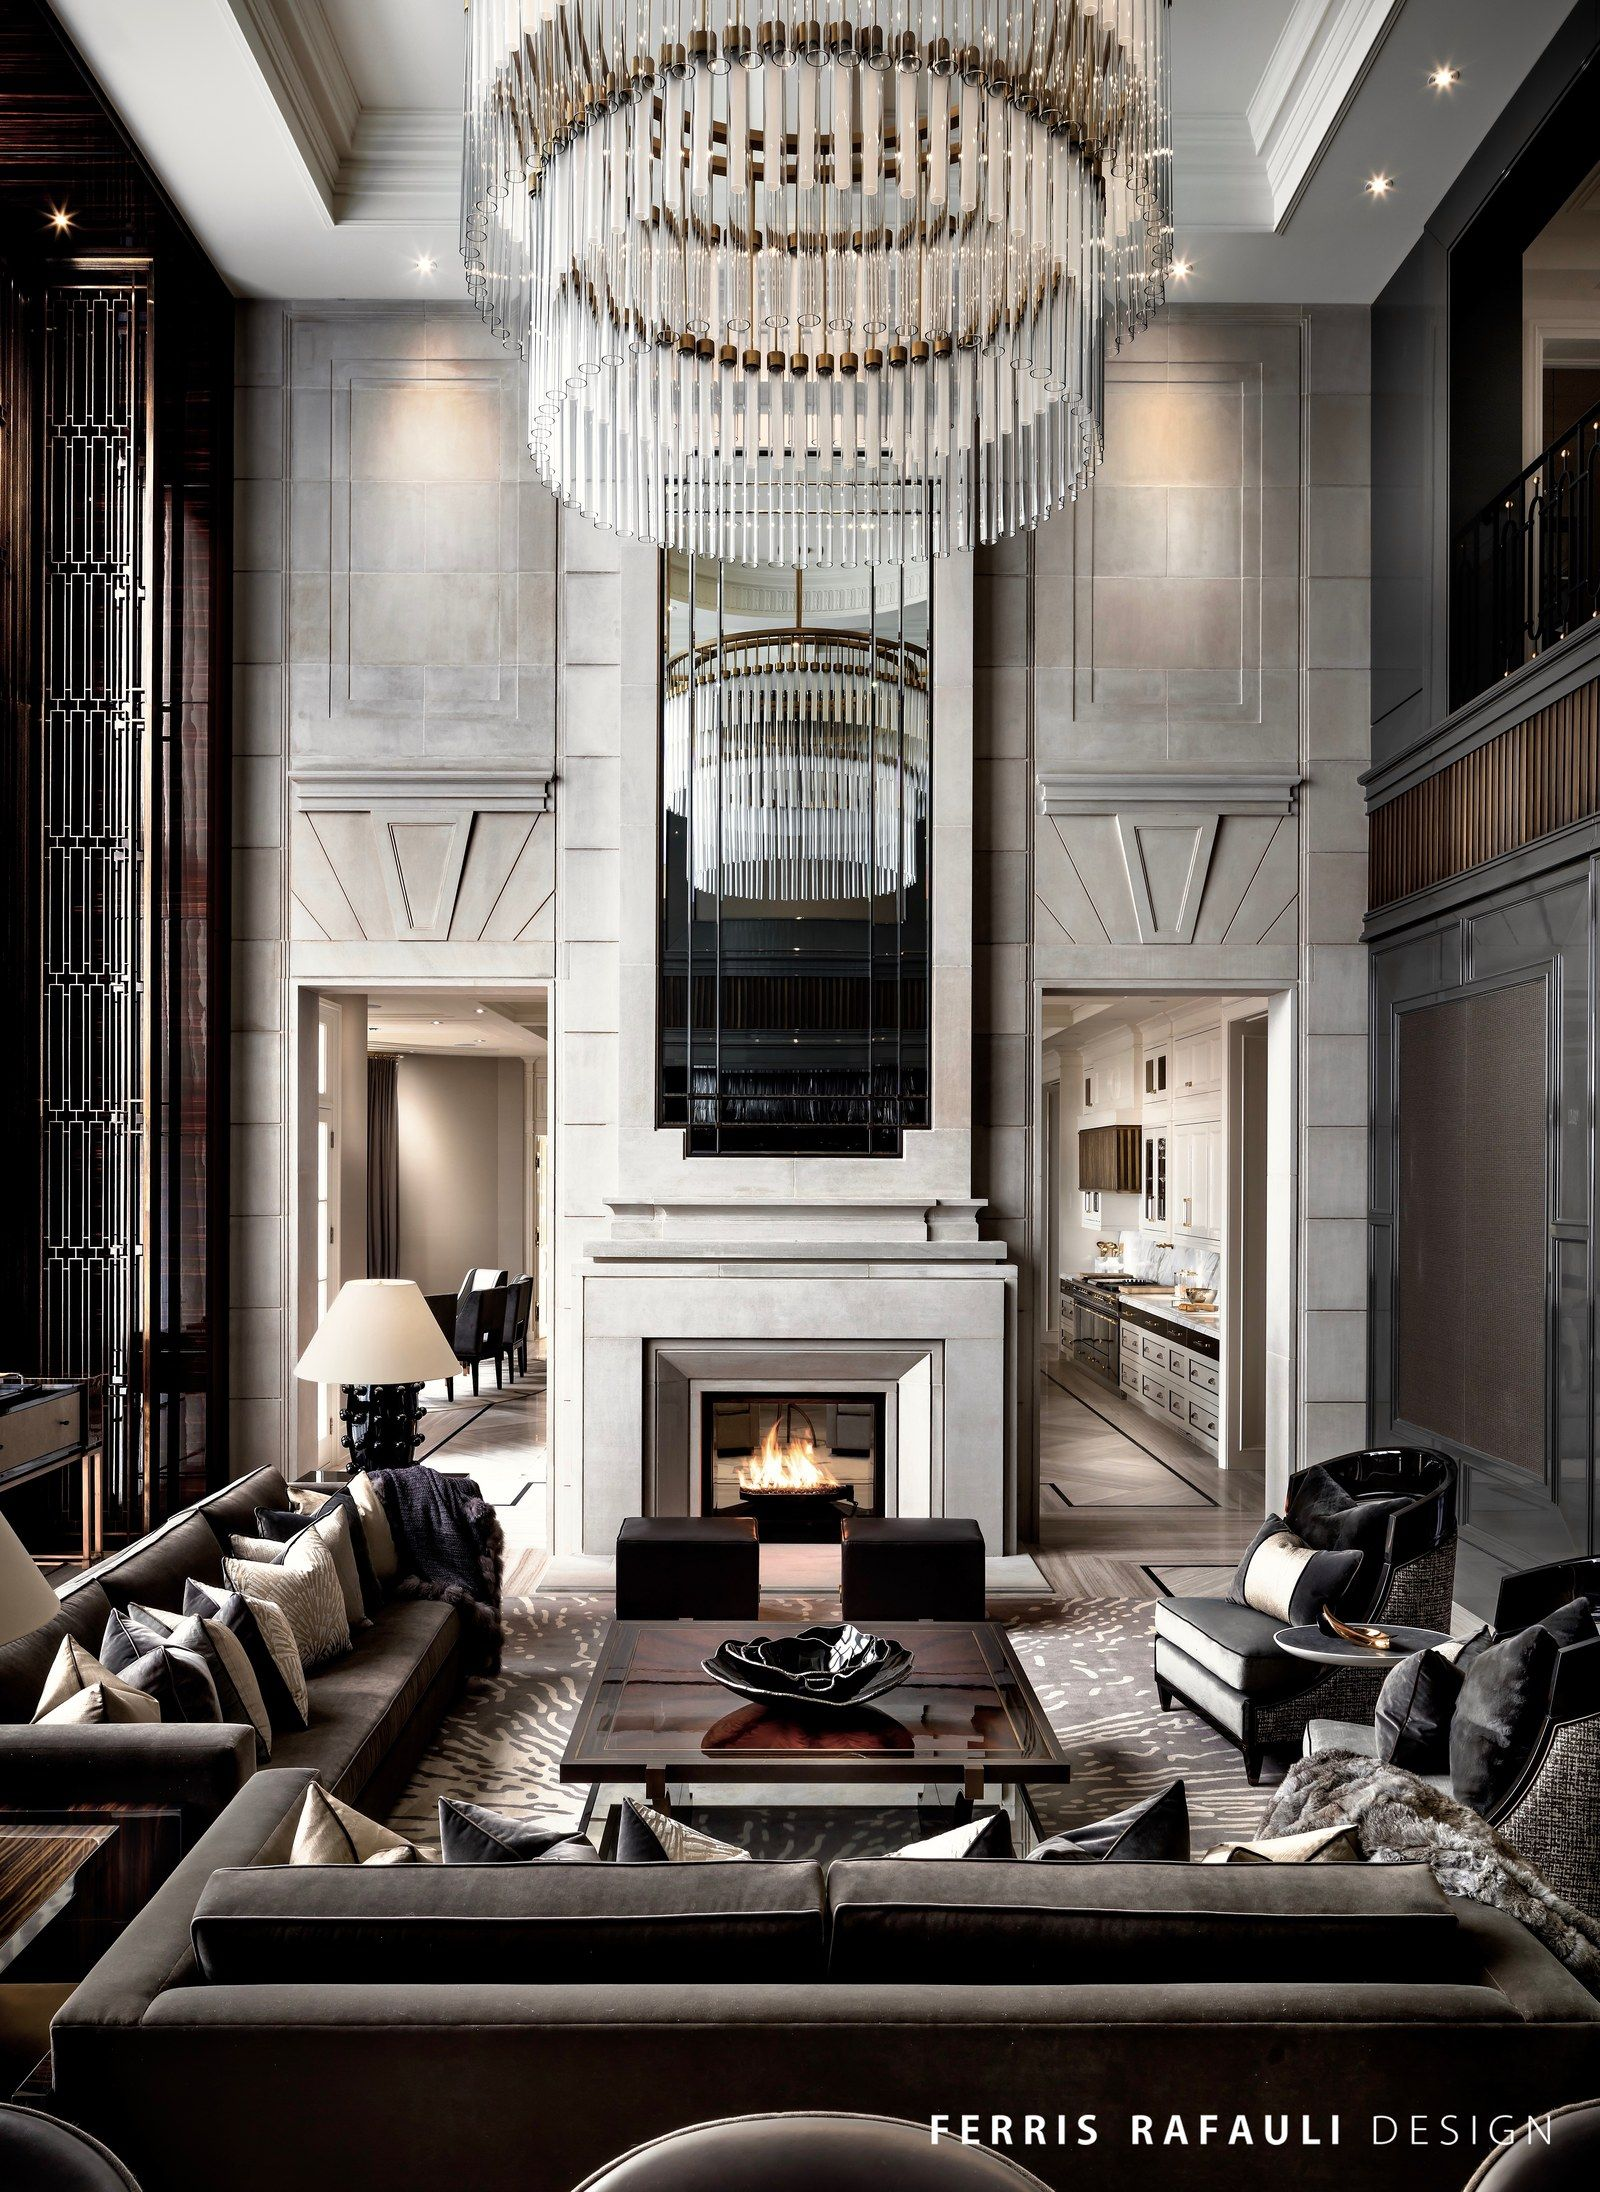 Ferris rafauli specializes in integrating ultra luxury for Fancy home decor